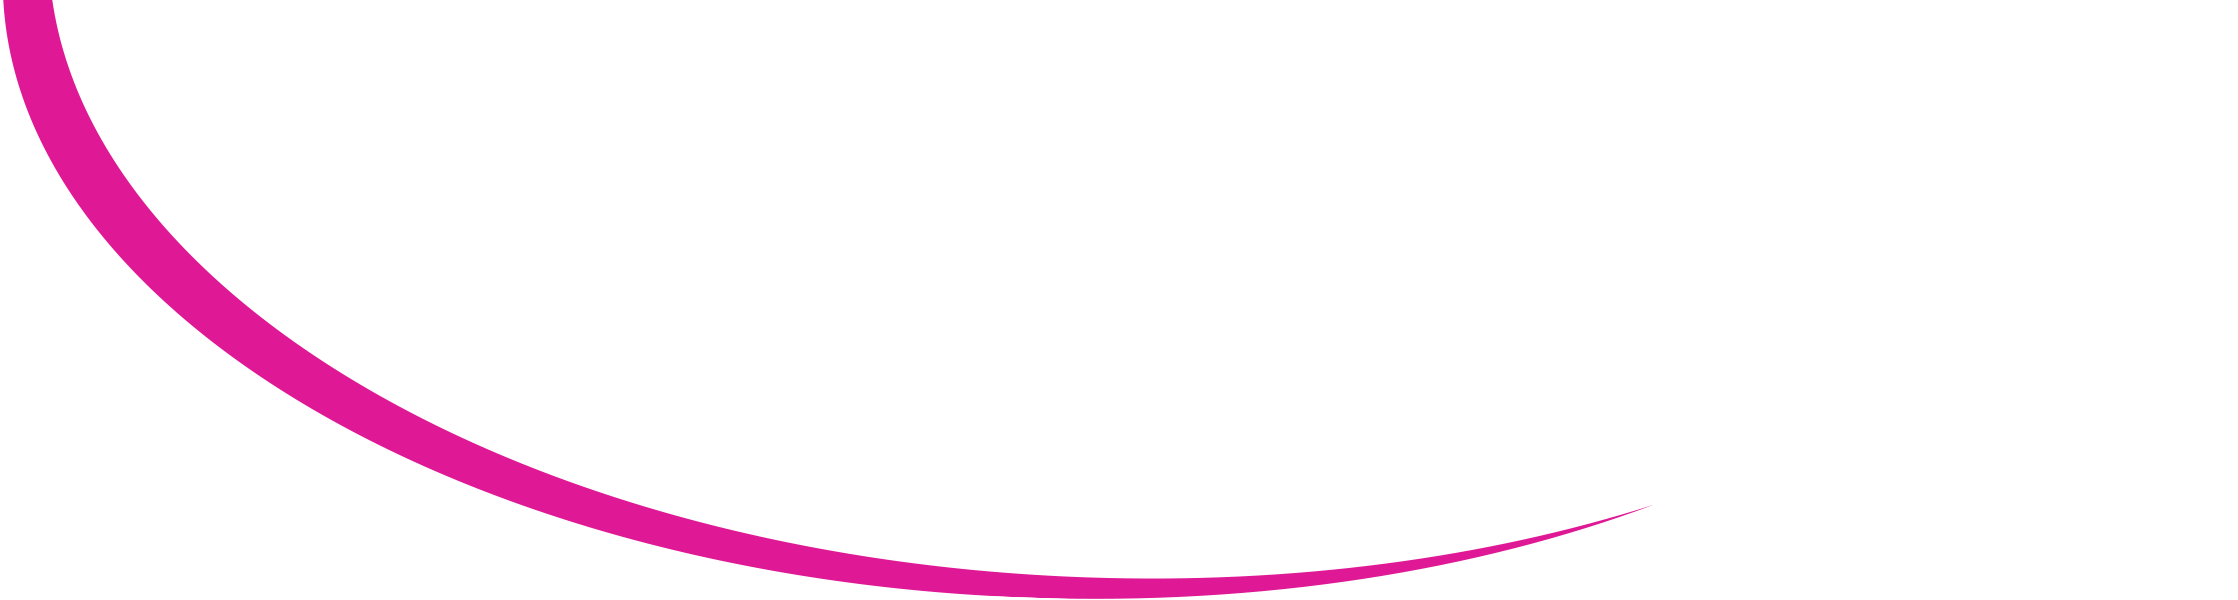 Pink line png. Am i pregnant how